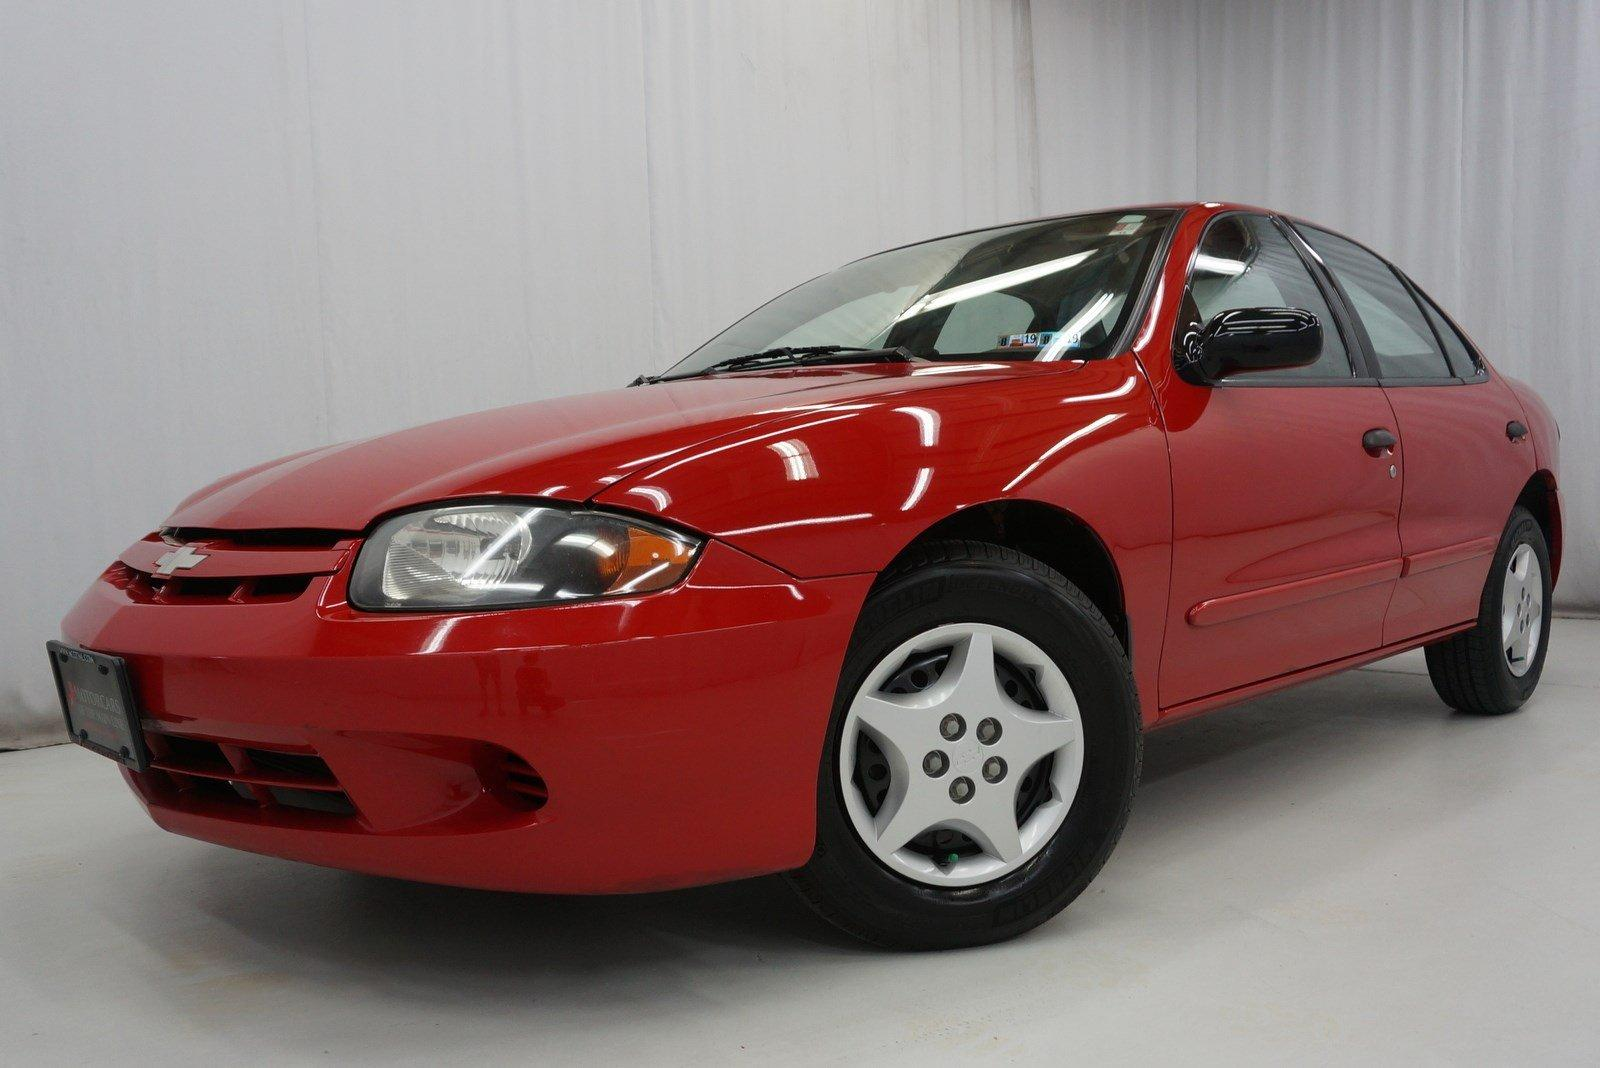 2003 chevrolet cavalier stock 7160062 for sale near king of prussia pa pa chevrolet dealer 2003 chevrolet cavalier stock 7160062